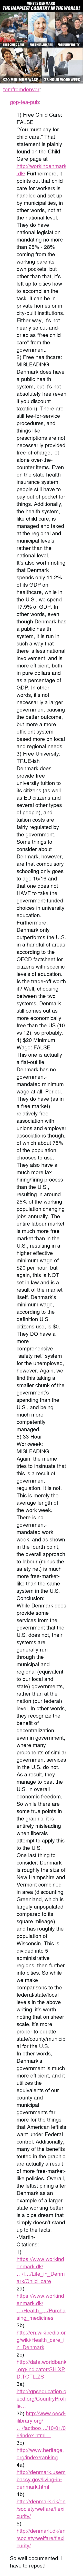 """Being Alone, Facts, and Life: WHY IS DENMARK  THE HAPPIEST COUNTRY IN THE WORLD?  FREE CHILD CARE  FREE HEALTHCARE  FREE UNIVERSITY  $20 MINIMUM WAGE 33 HOUR WORKWEEK <p><a class=""""tumblr_blog"""" href=""""http://tomfromdenver.tumblr.com/post/141976723559"""">tomfromdenver</a>:</p> <blockquote> <p><a class=""""tumblr_blog"""" href=""""http://gop-tea-pub.tumblr.com/post/141976169192"""">gop-tea-pub</a>:</p> <blockquote> <p> 1) Free Child Care: FALSE</p> <p> """"You must pay for child care."""" That statement is plainly found on the Child Care page at <a href=""""http://workindenmark.dk/"""">http://workindenmark.dk/</a>  Furthermore, it points out that child care for workers is handled and  set up by municipalities, in other words, not at the national level.  They do have national legislation mandating no more than 25% - 28%  coming from the working parents' own pockets, but other than that, it's  left up to cities how to accomplish the task. It can be in private homes  or in city-built institutions. Either way, it's not nearly so  cut-and-dried as """"free child care"""" from the government.</p> <p> 2) Free healthcare: MISLEADING</p> <p>  Denmark does have a public health system, but it's not absolutely free  (even if you discount taxation). There are still fee-for-service  procedures, and things like prescriptions are not necessarily provided  free-of-charge, let alone over-the-counter items. Even on the state  health insurance system, people still have to pay out of pocket for  things. Additionally, the health system, like child care, is managed and  taxed at the regional and municipal levels, rather than the national  level. </p> <p> It's also worth noting that Denmark spends only 11.2% of  its GDP on healthcare, while in the U.S., we spend 17.9% of GDP. In  other words, even though Denmark has a public health system, it is run  in such a way that there is less national involvement, and is more  efficient, both in pure dollars and as a percentage of GDP. In other  words, it's not necessarily a larger go"""